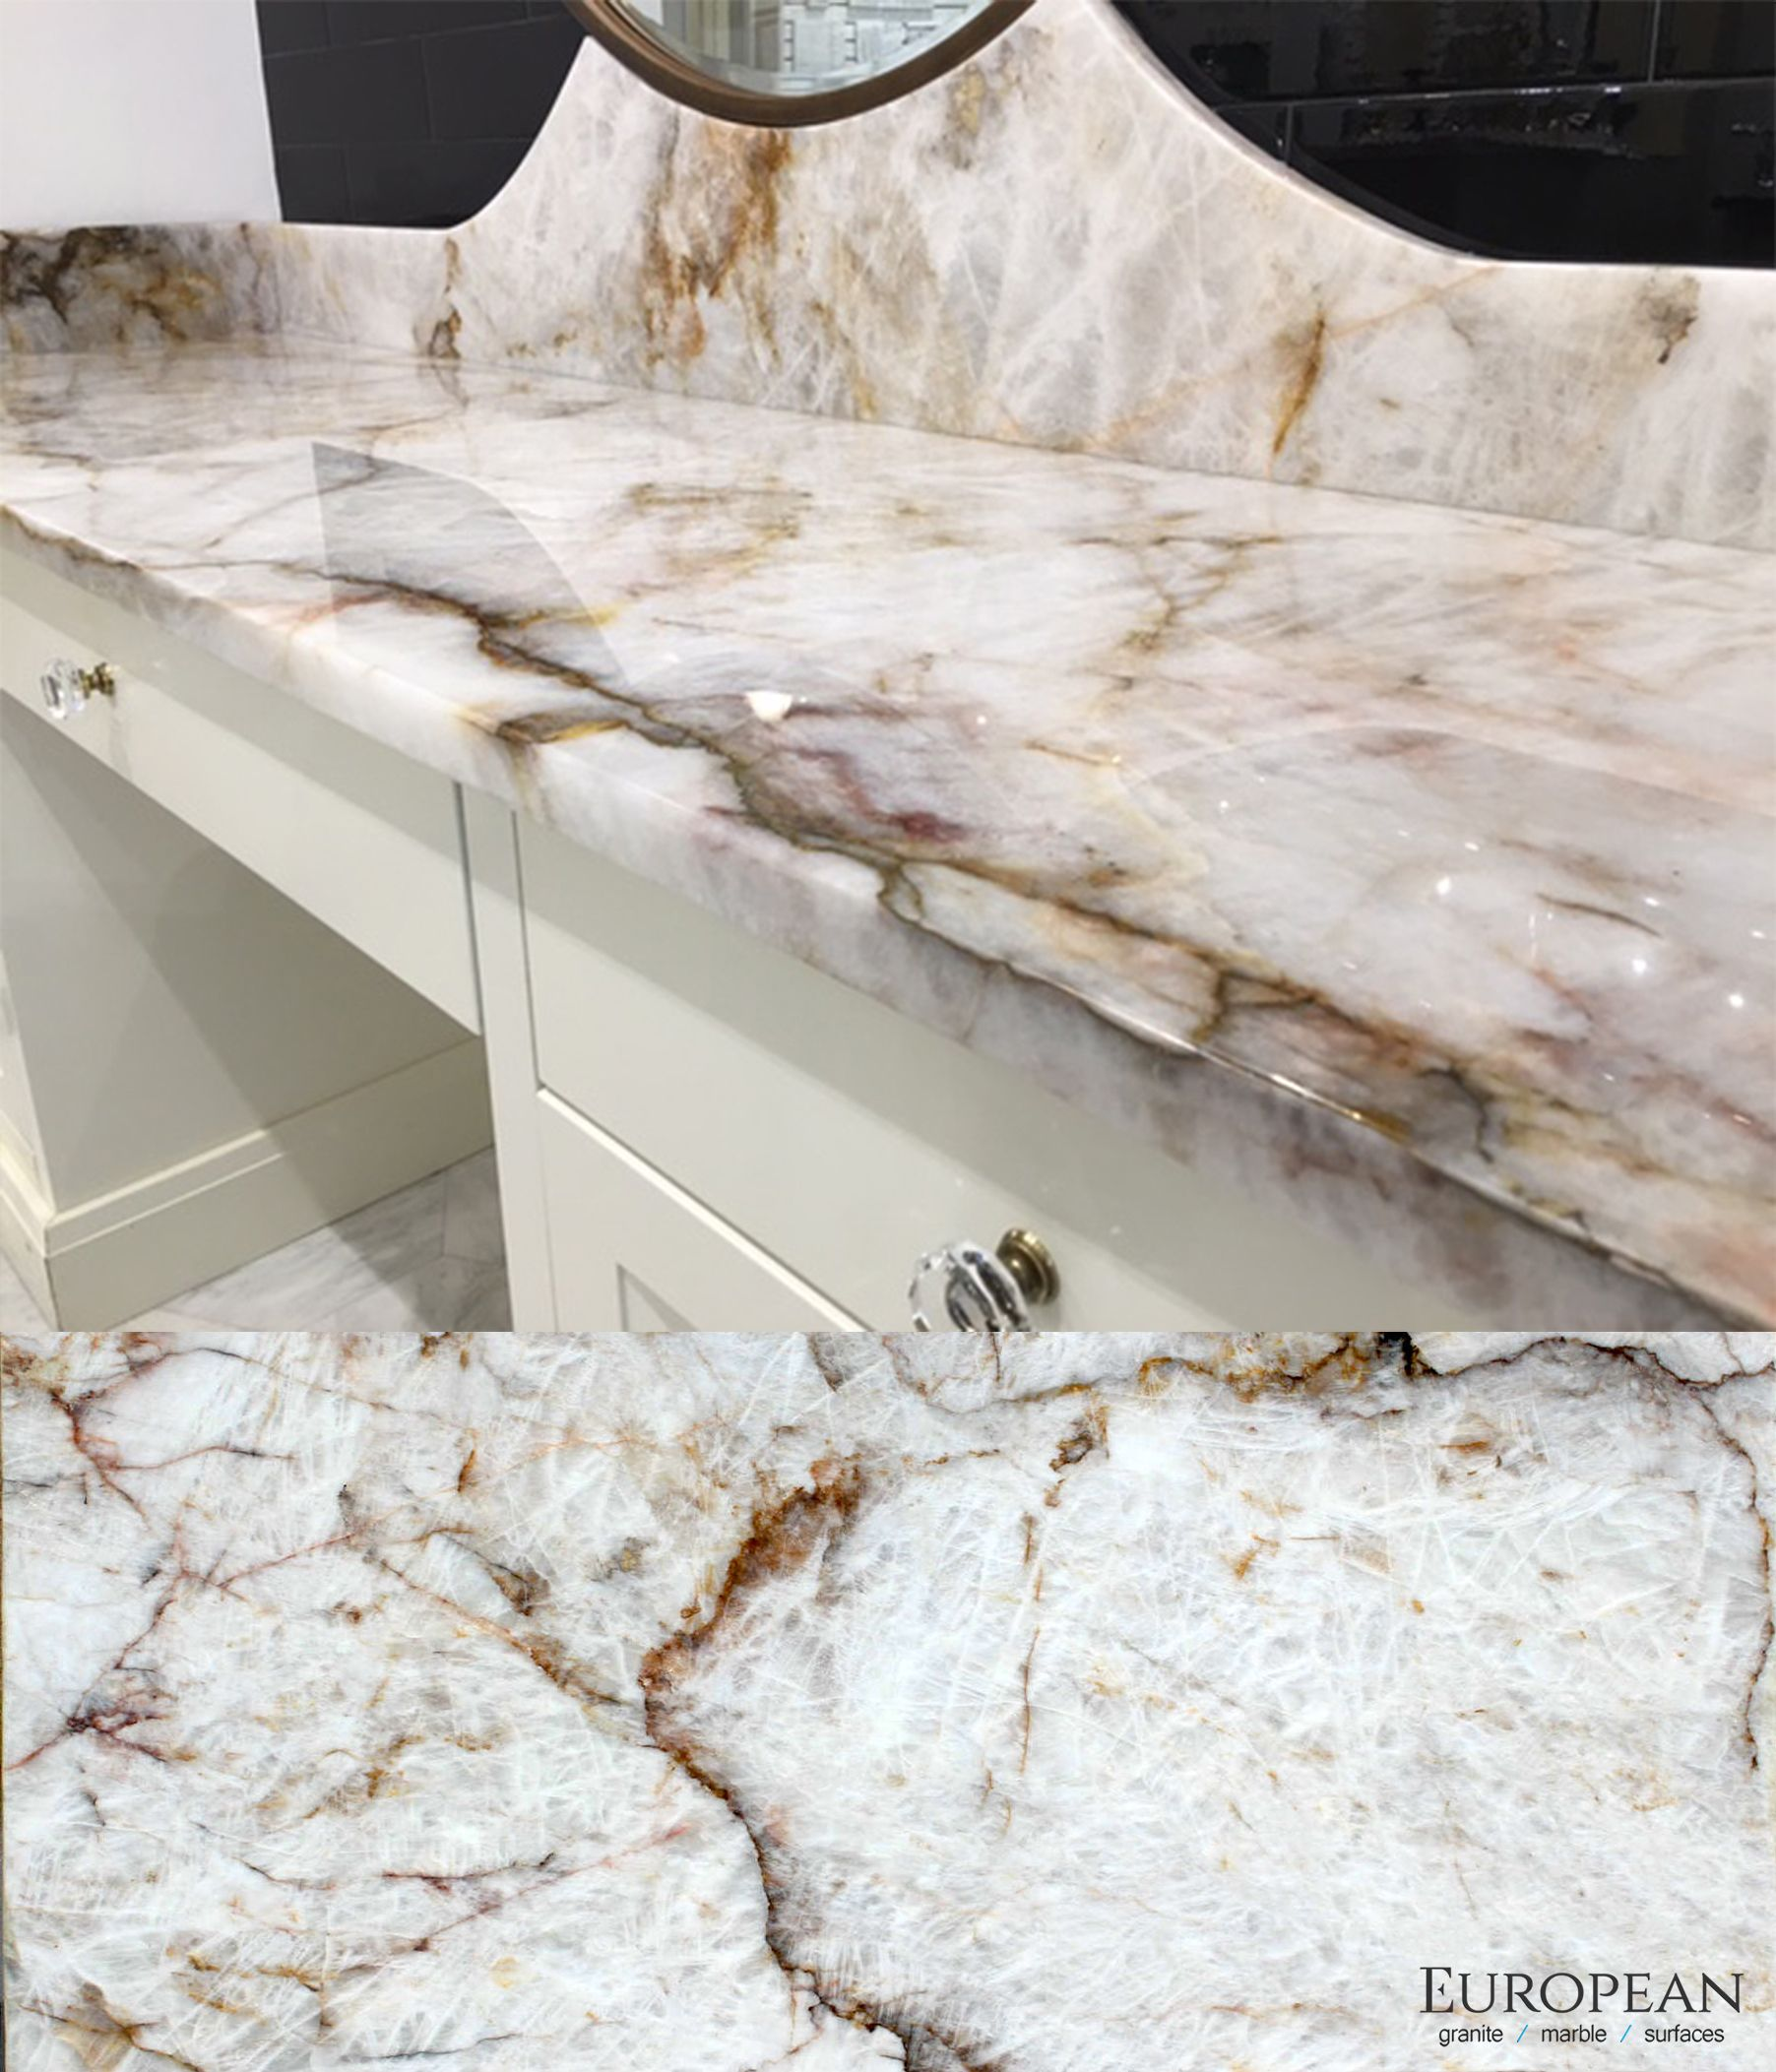 Is quartz considered a natural stone -  Crystalline Landscape Of Quartz Deposits And Sparkling Specks Of Crystal With Its Soft Color Pallet And Marble Like Veining This Natural Stone Brings